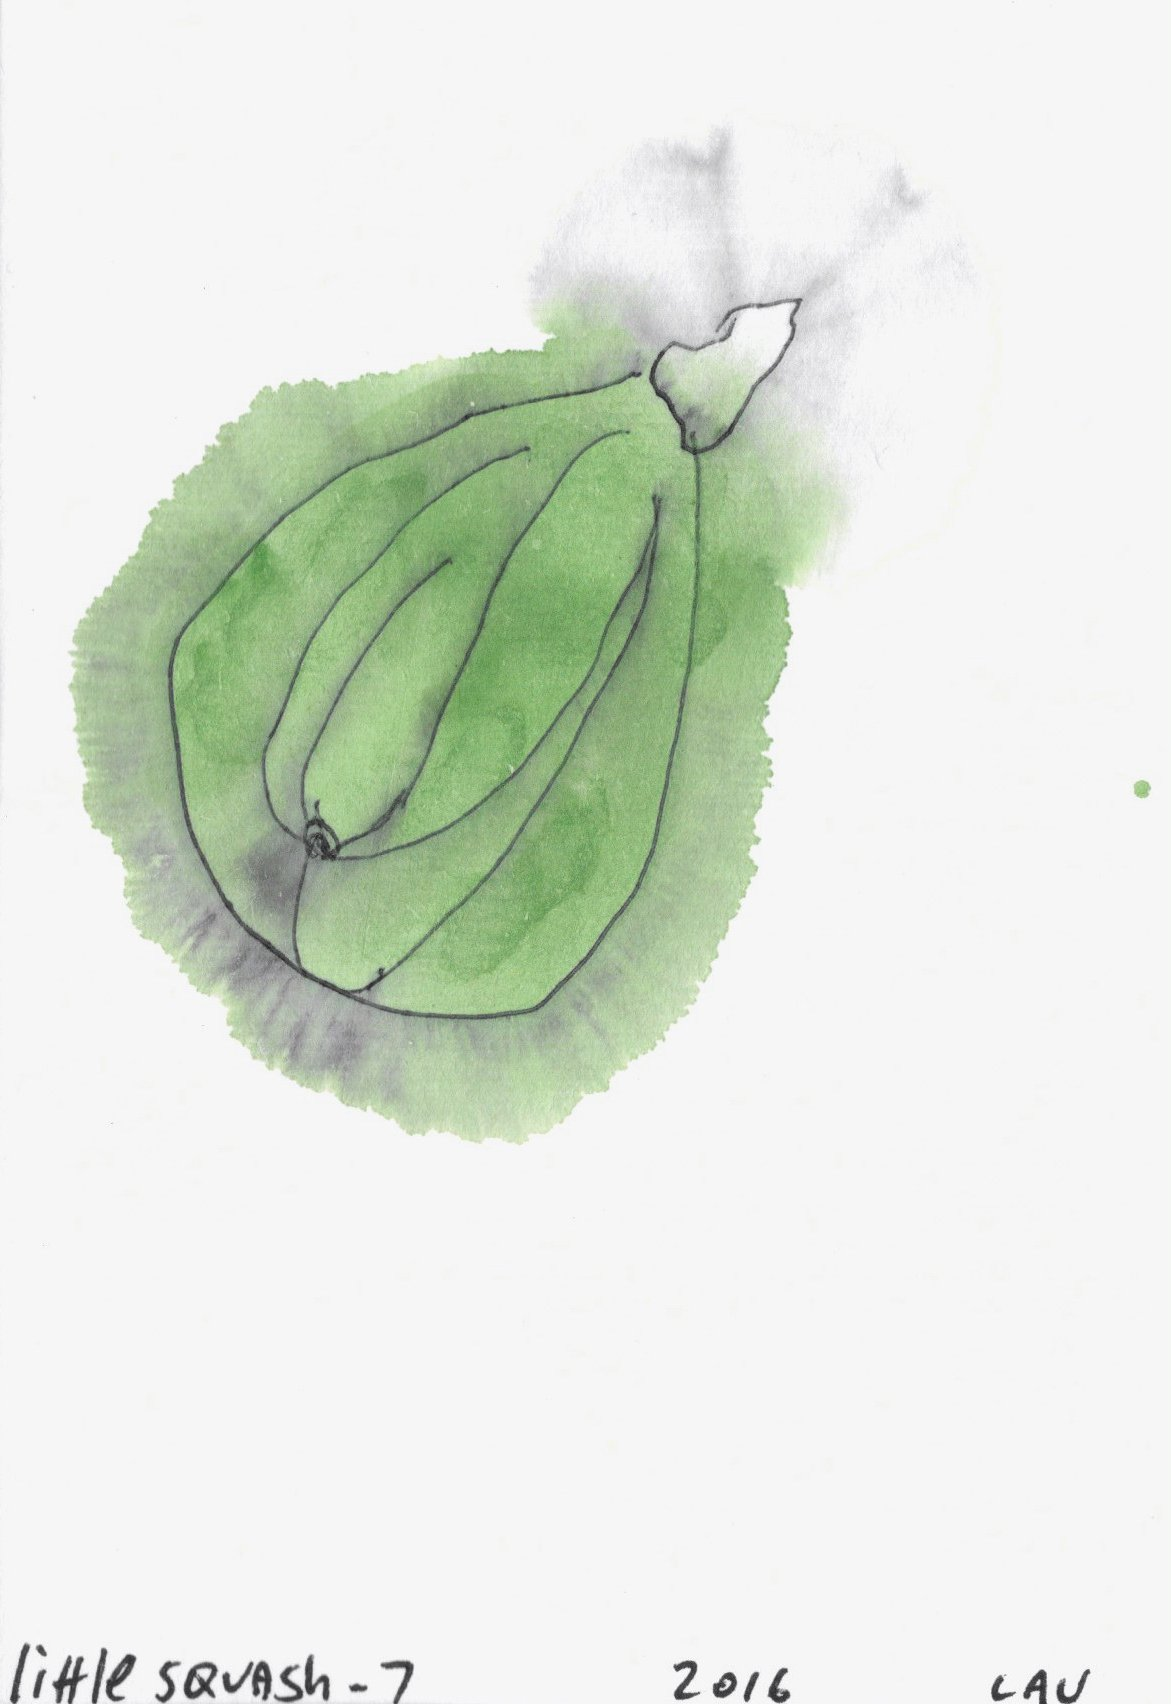 little squash #7 | Sumi ink paintings by